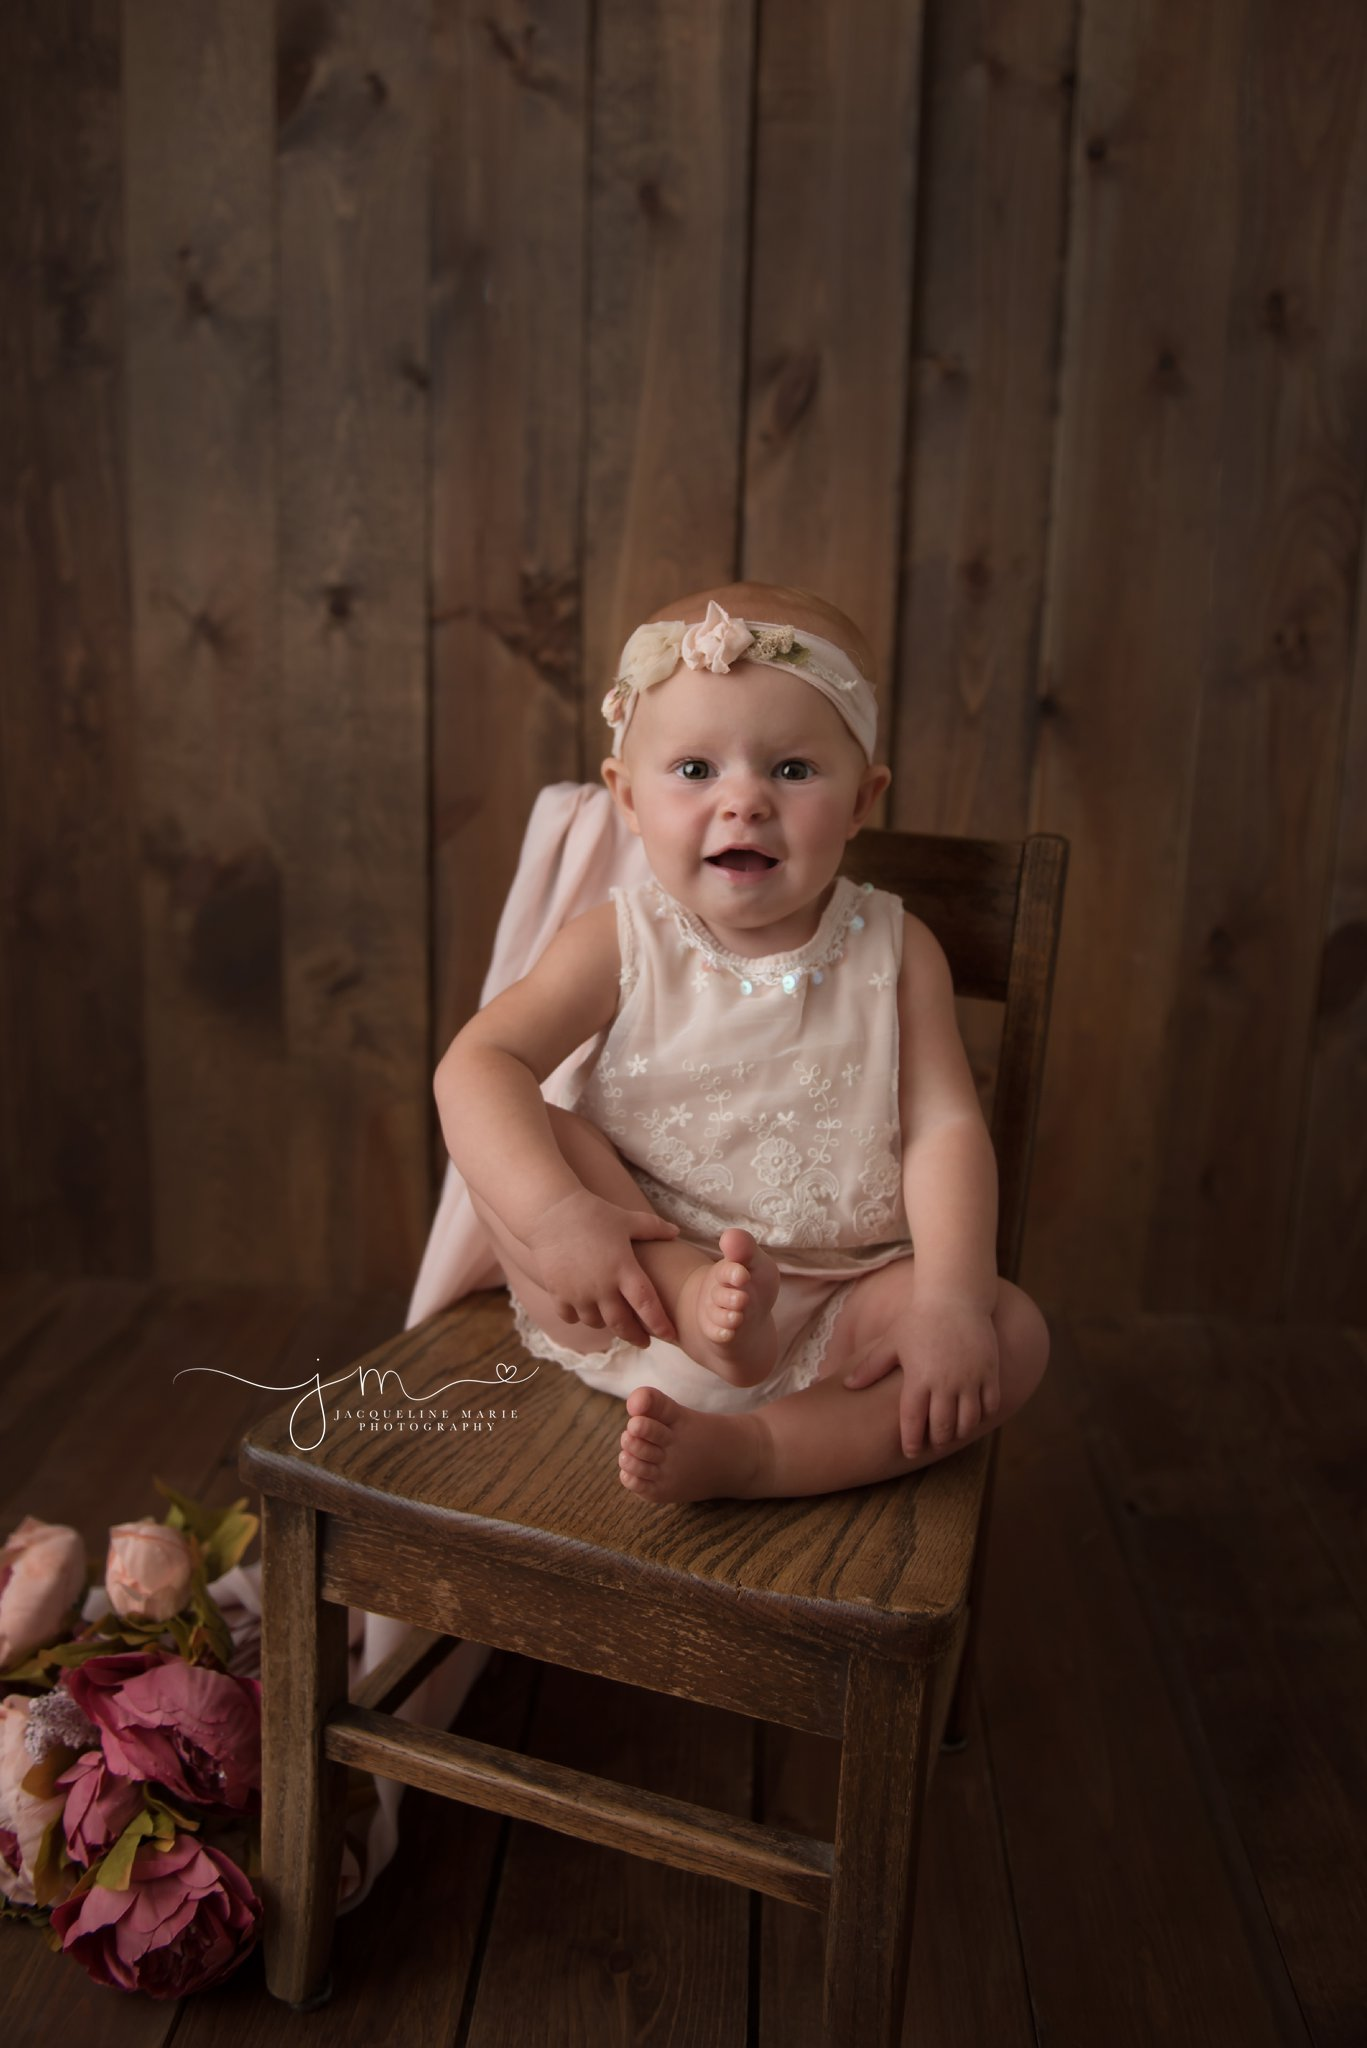 columbus ohio baby photographer features image of baby girl on wood chair